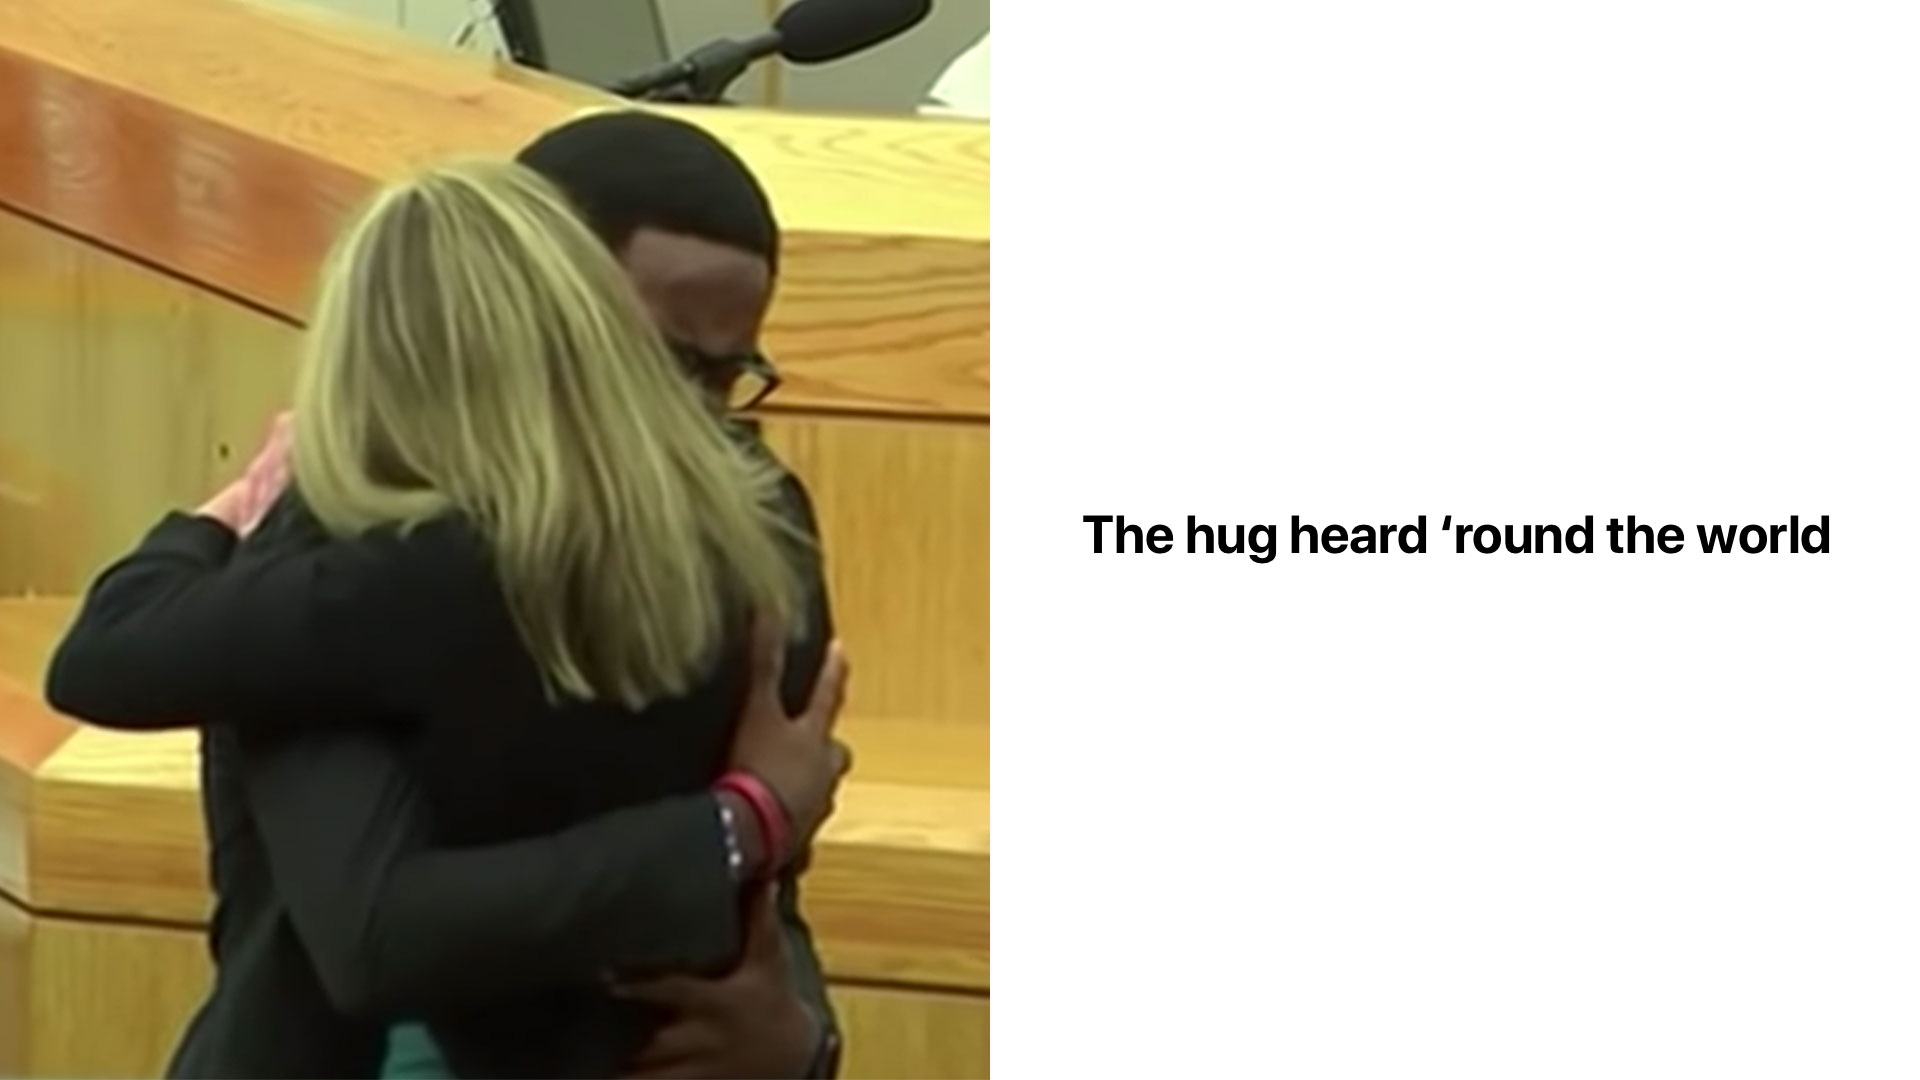 The Hug Heard 'Round The World